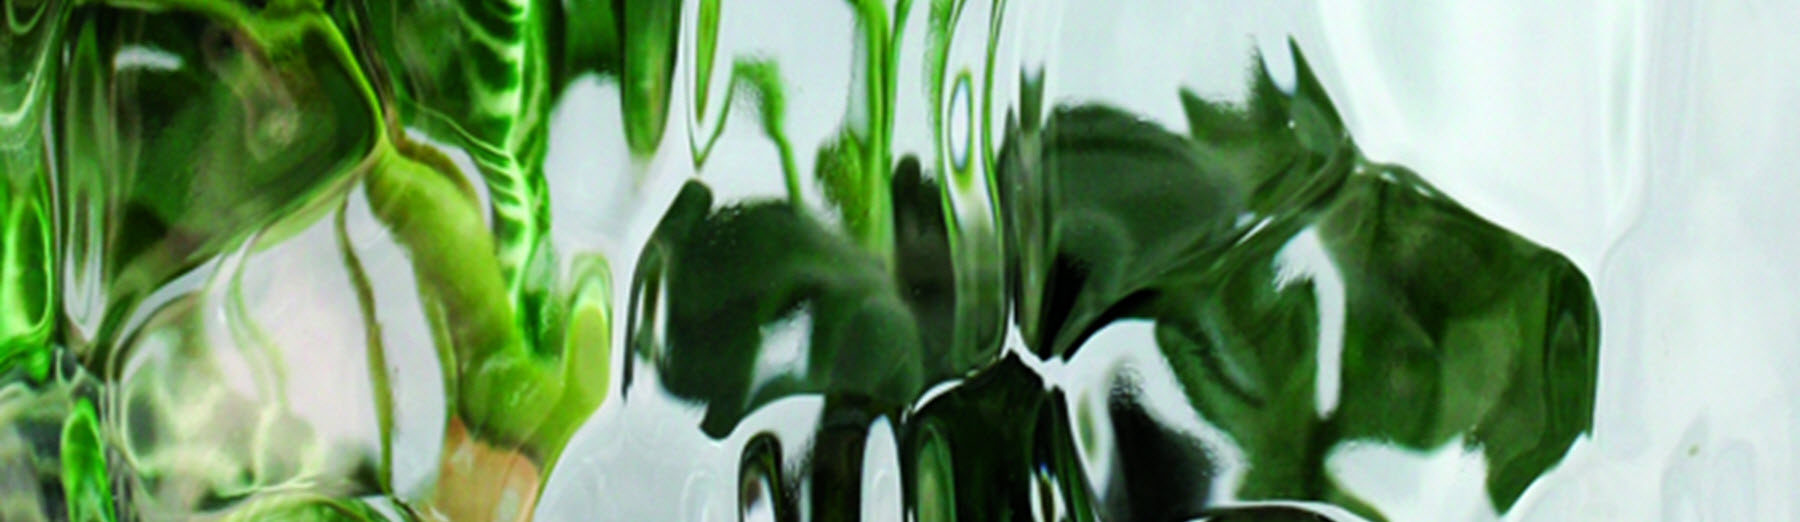 decorative-glass-banner-image